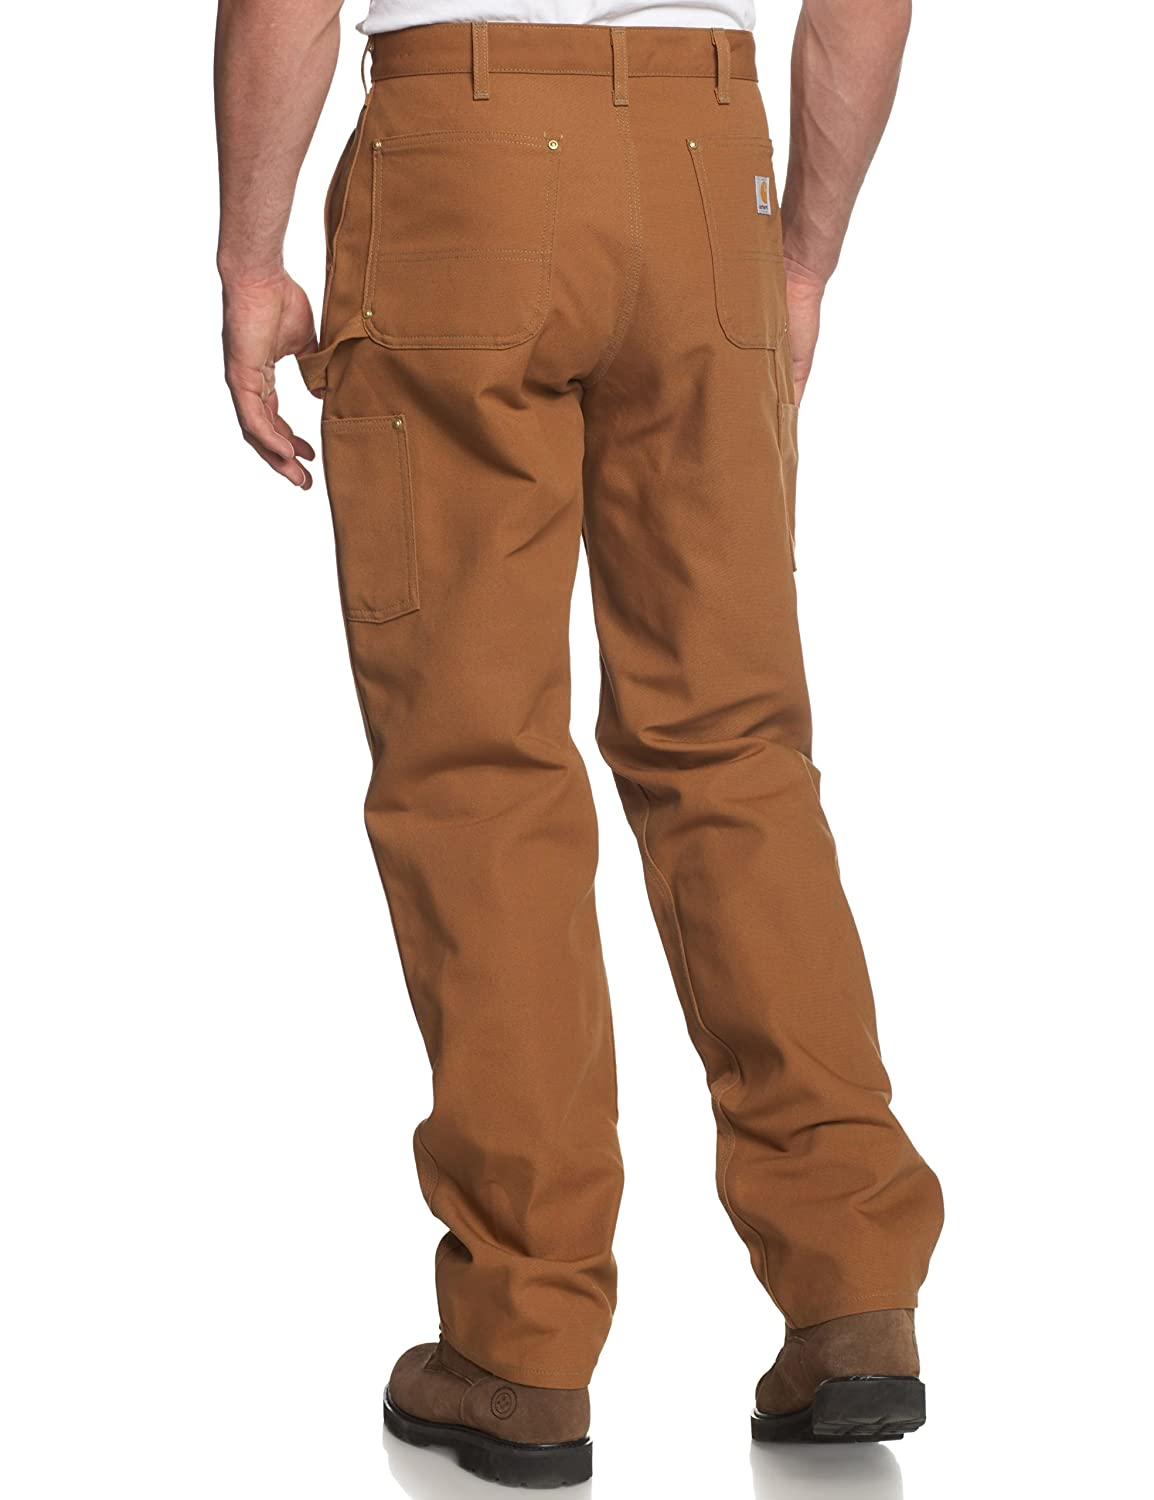 Amazon.com: Carhartt Men's Double Front Duck Utility Work Dungaree ...